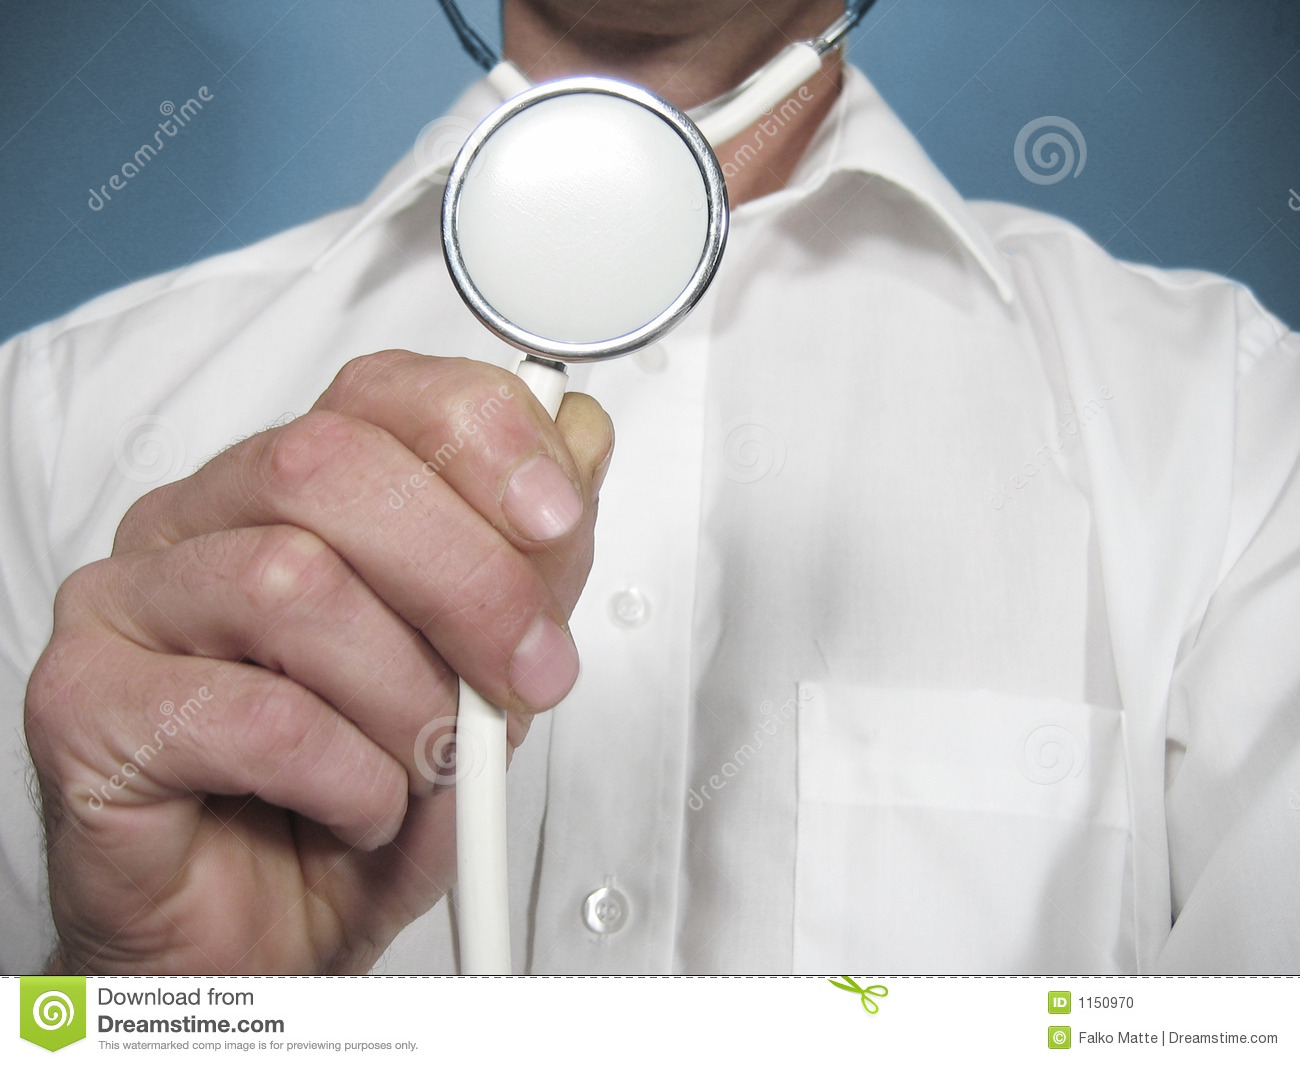 Medical Person Holds a Stethoscope